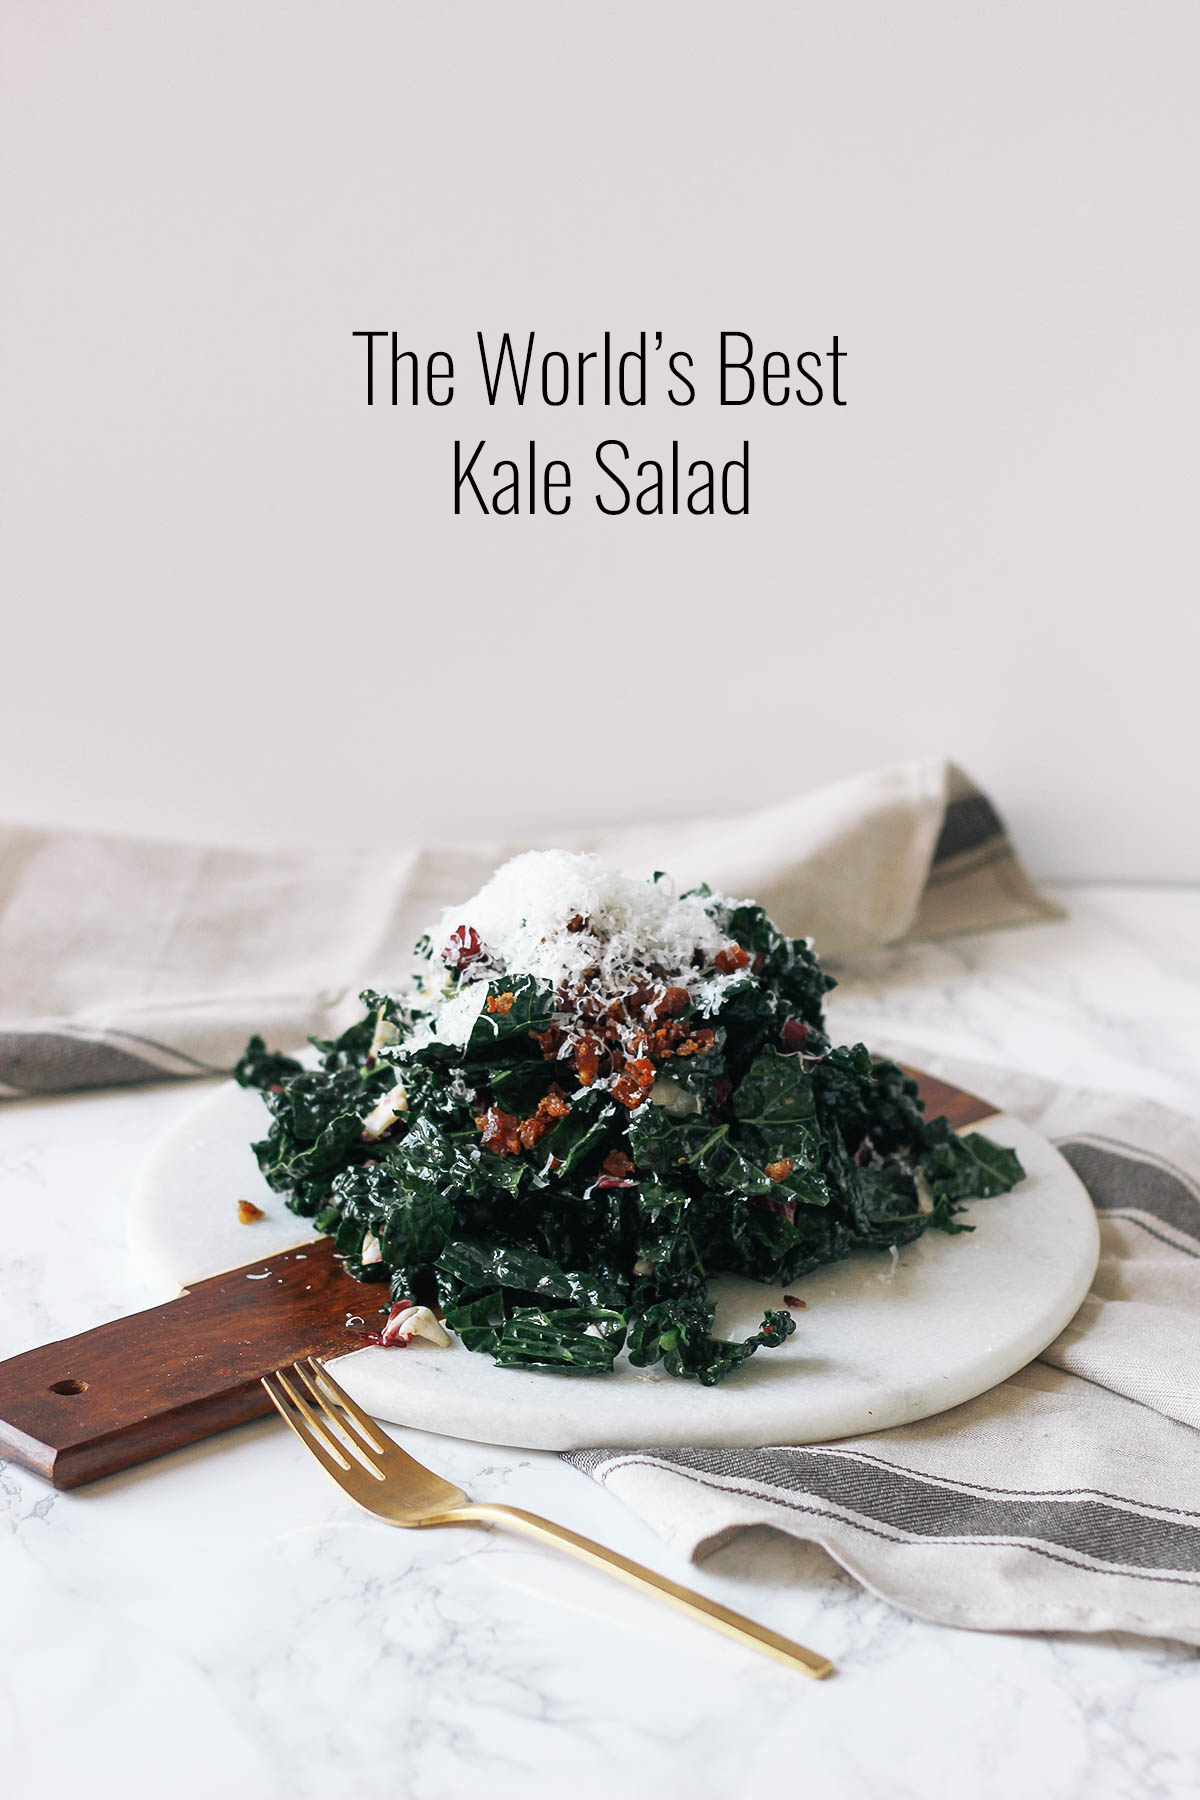 Get the recipe for the world's best kale salad, inspired by Darwin Cafe in San Francisco.